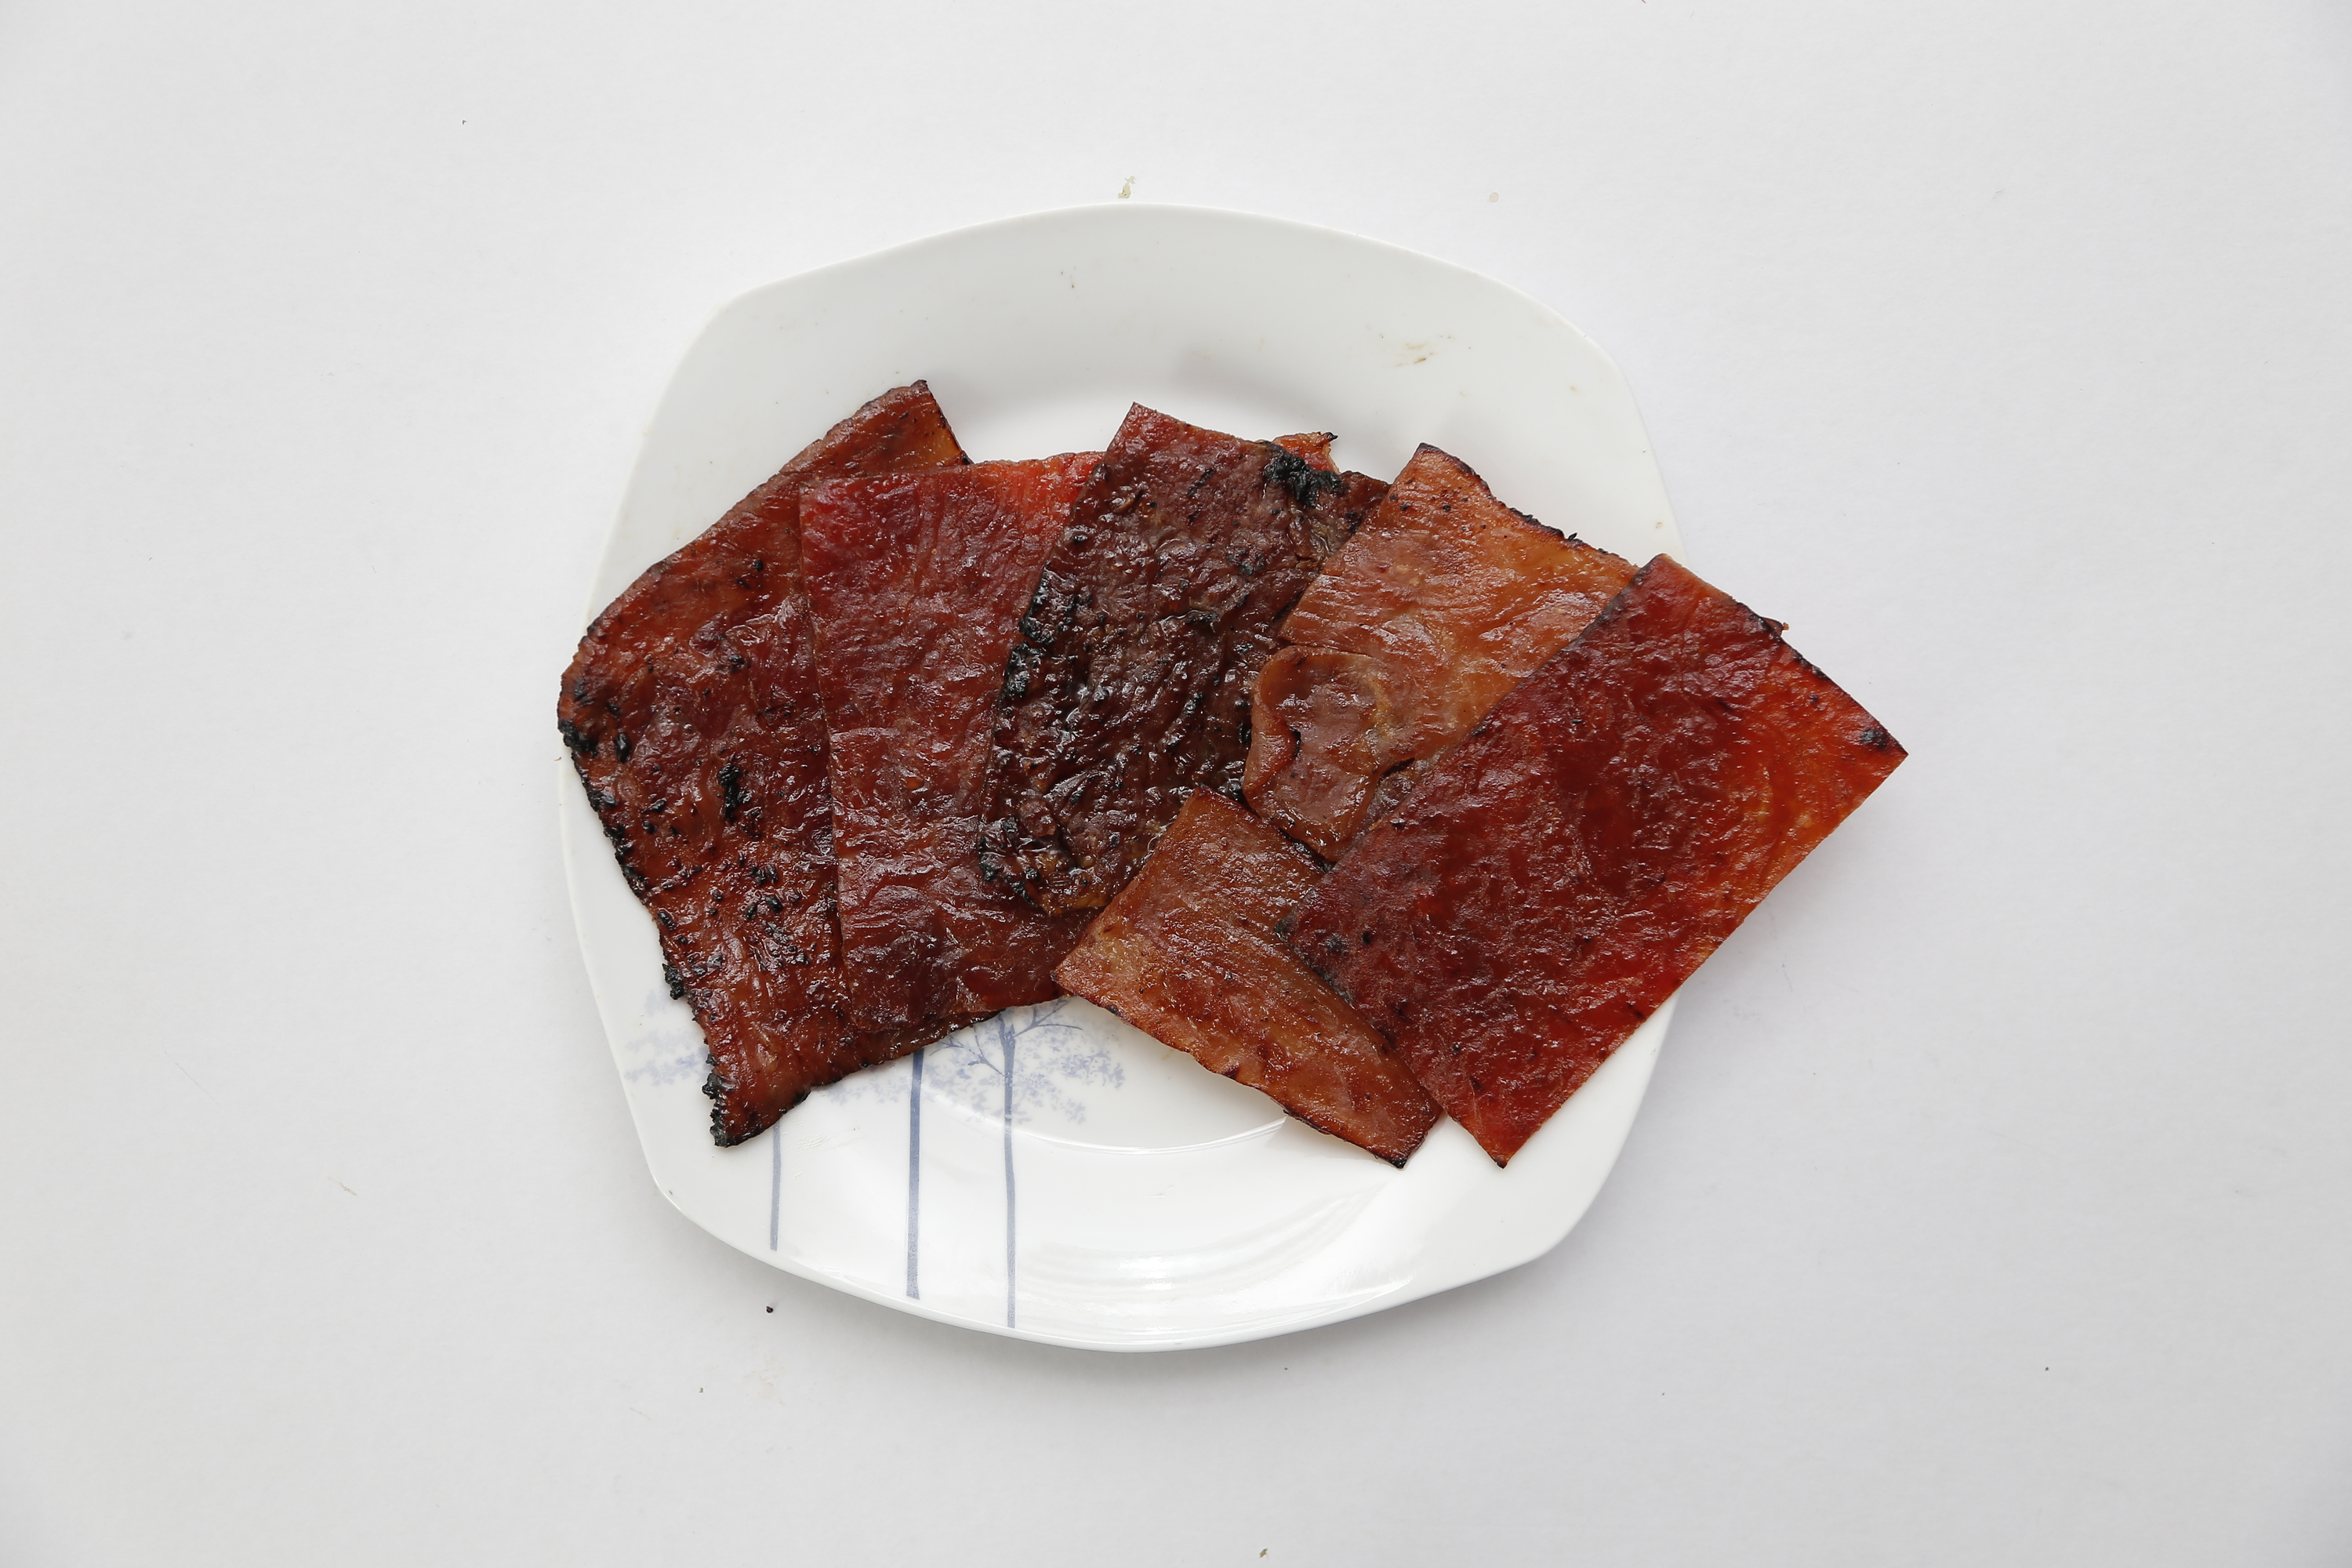 Battle of the bak kwa